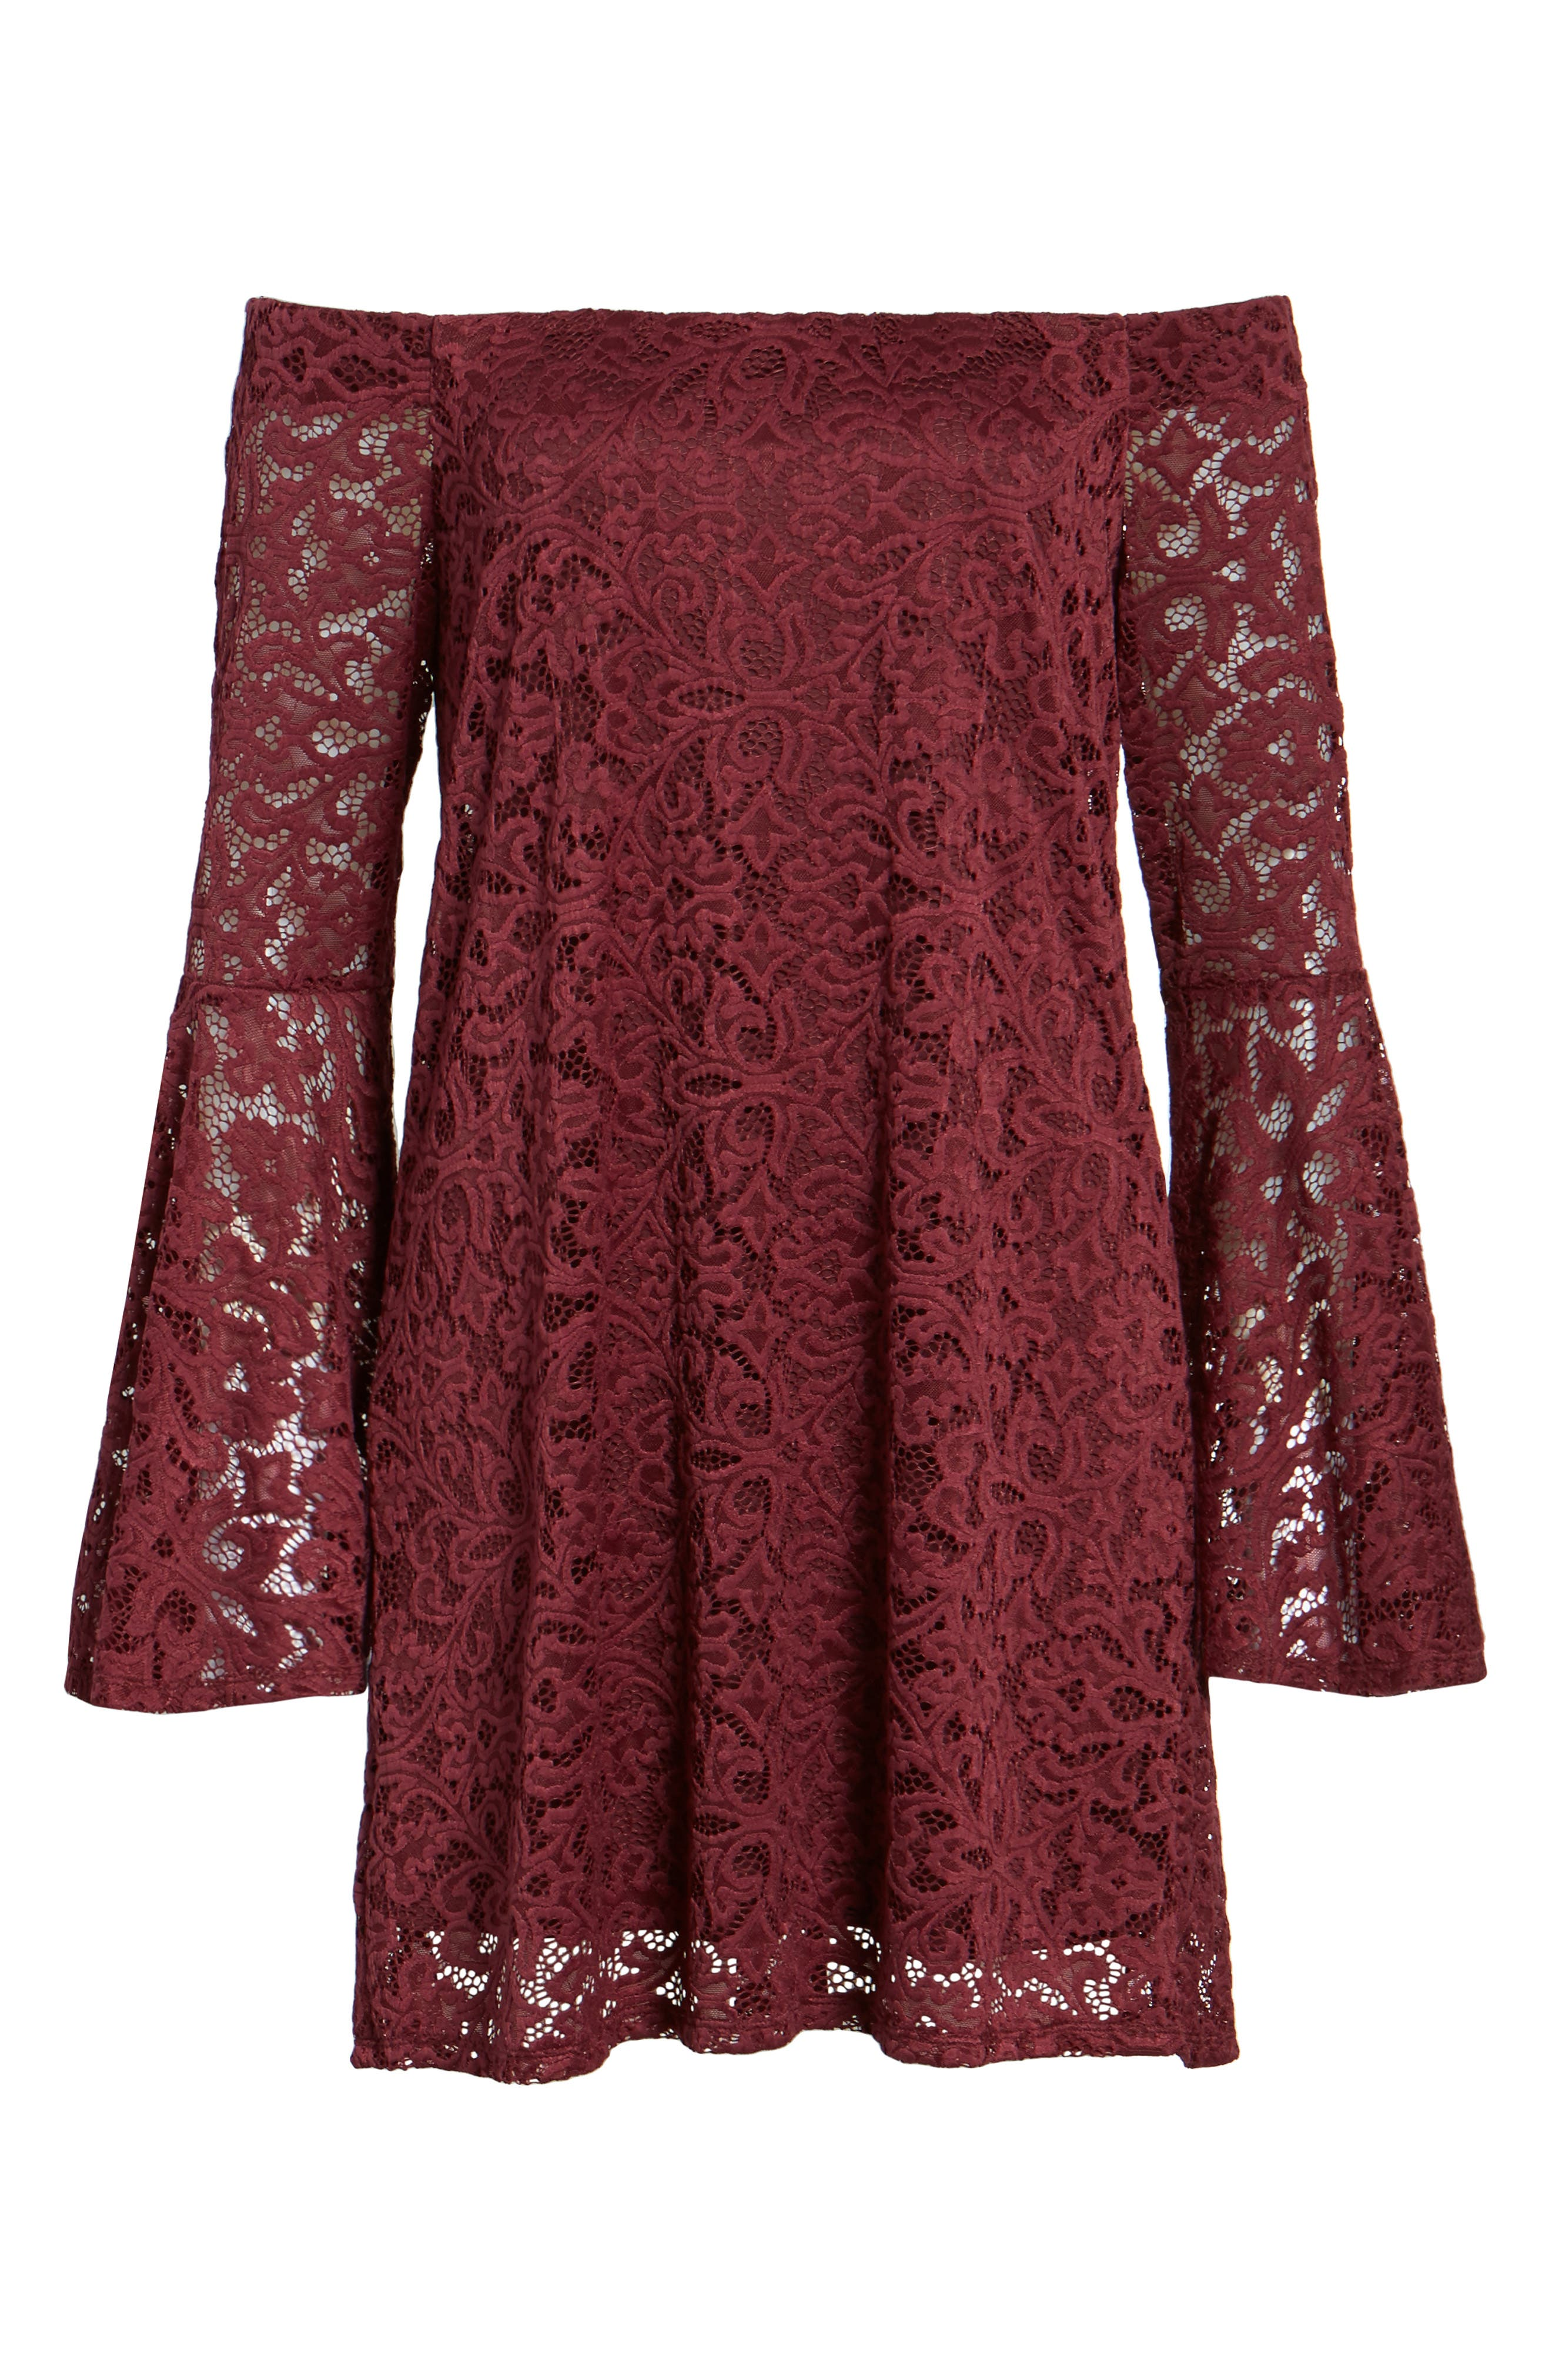 Lace Bell Sleeve Off the Shoulder Dress,                             Alternate thumbnail 6, color,                             930